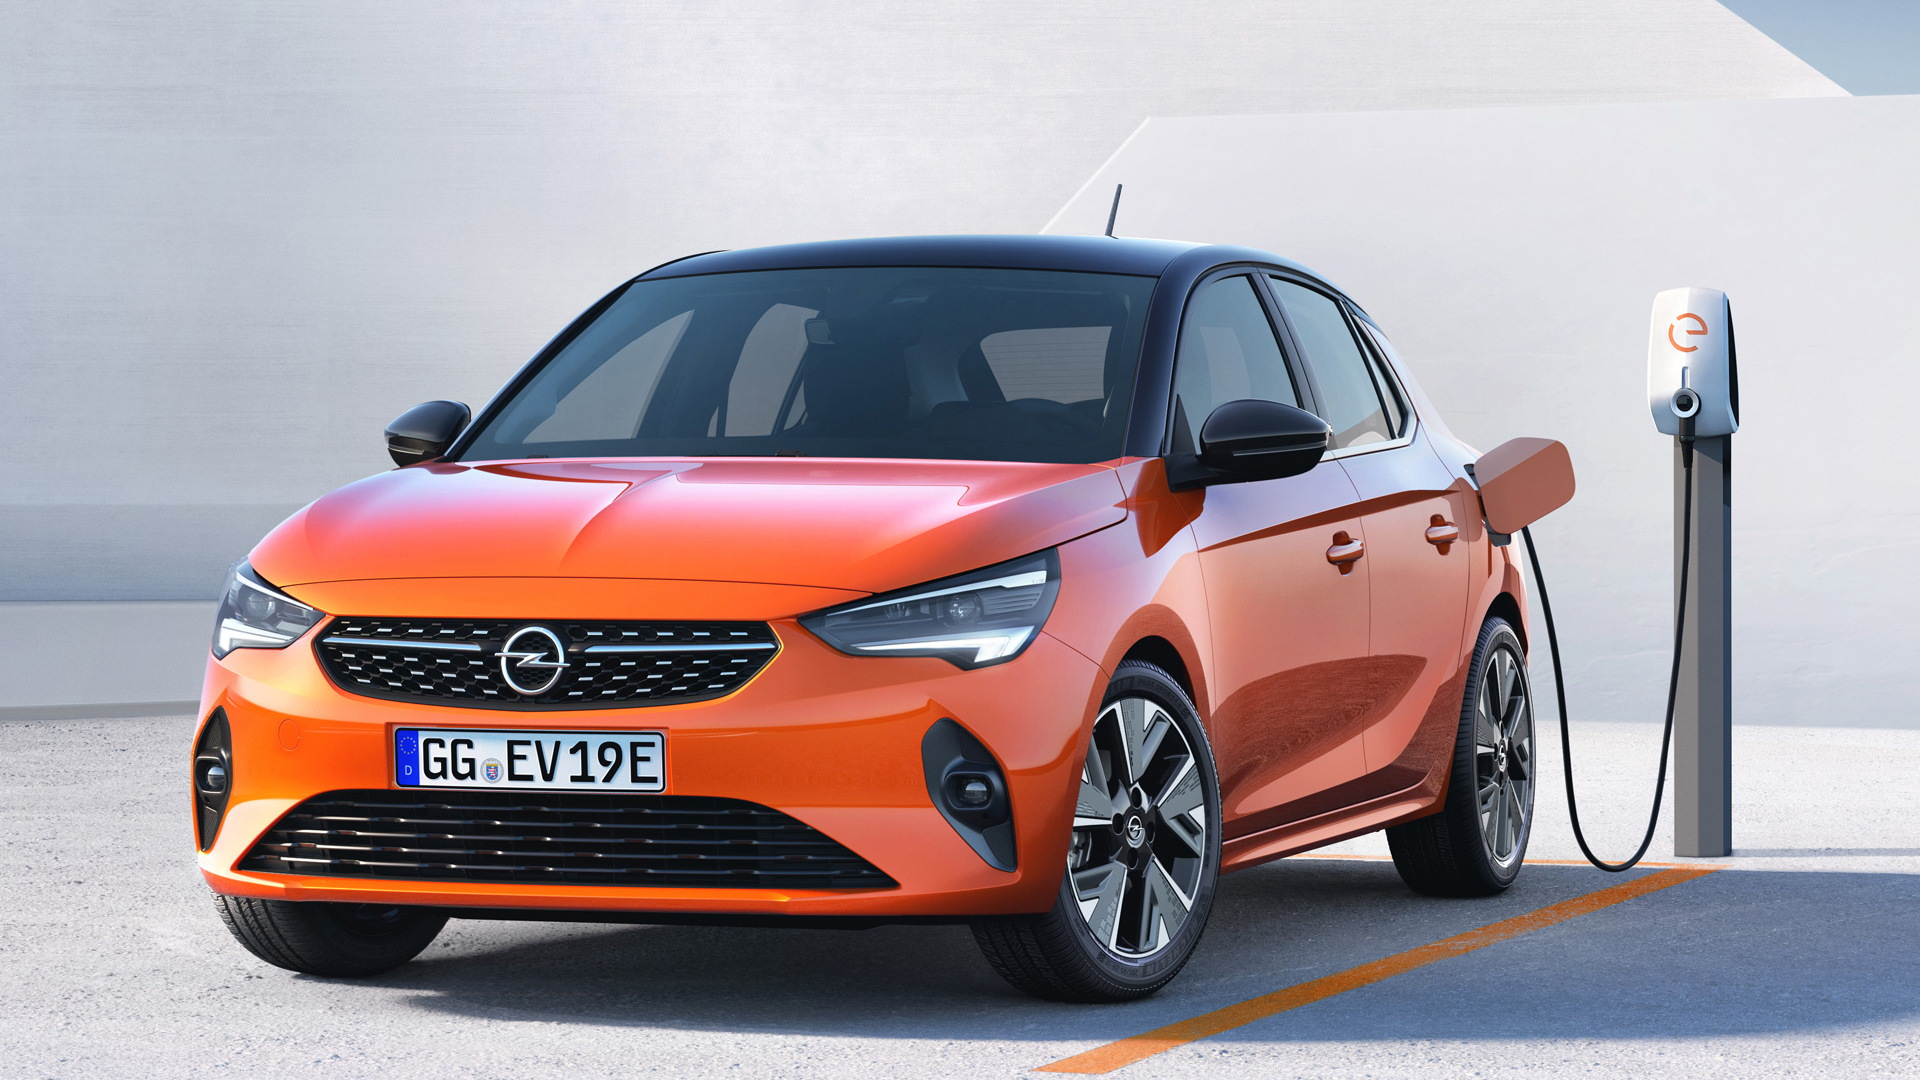 Opel S First Car Post Gm Is The 2020 Corsa E Electric Hatch